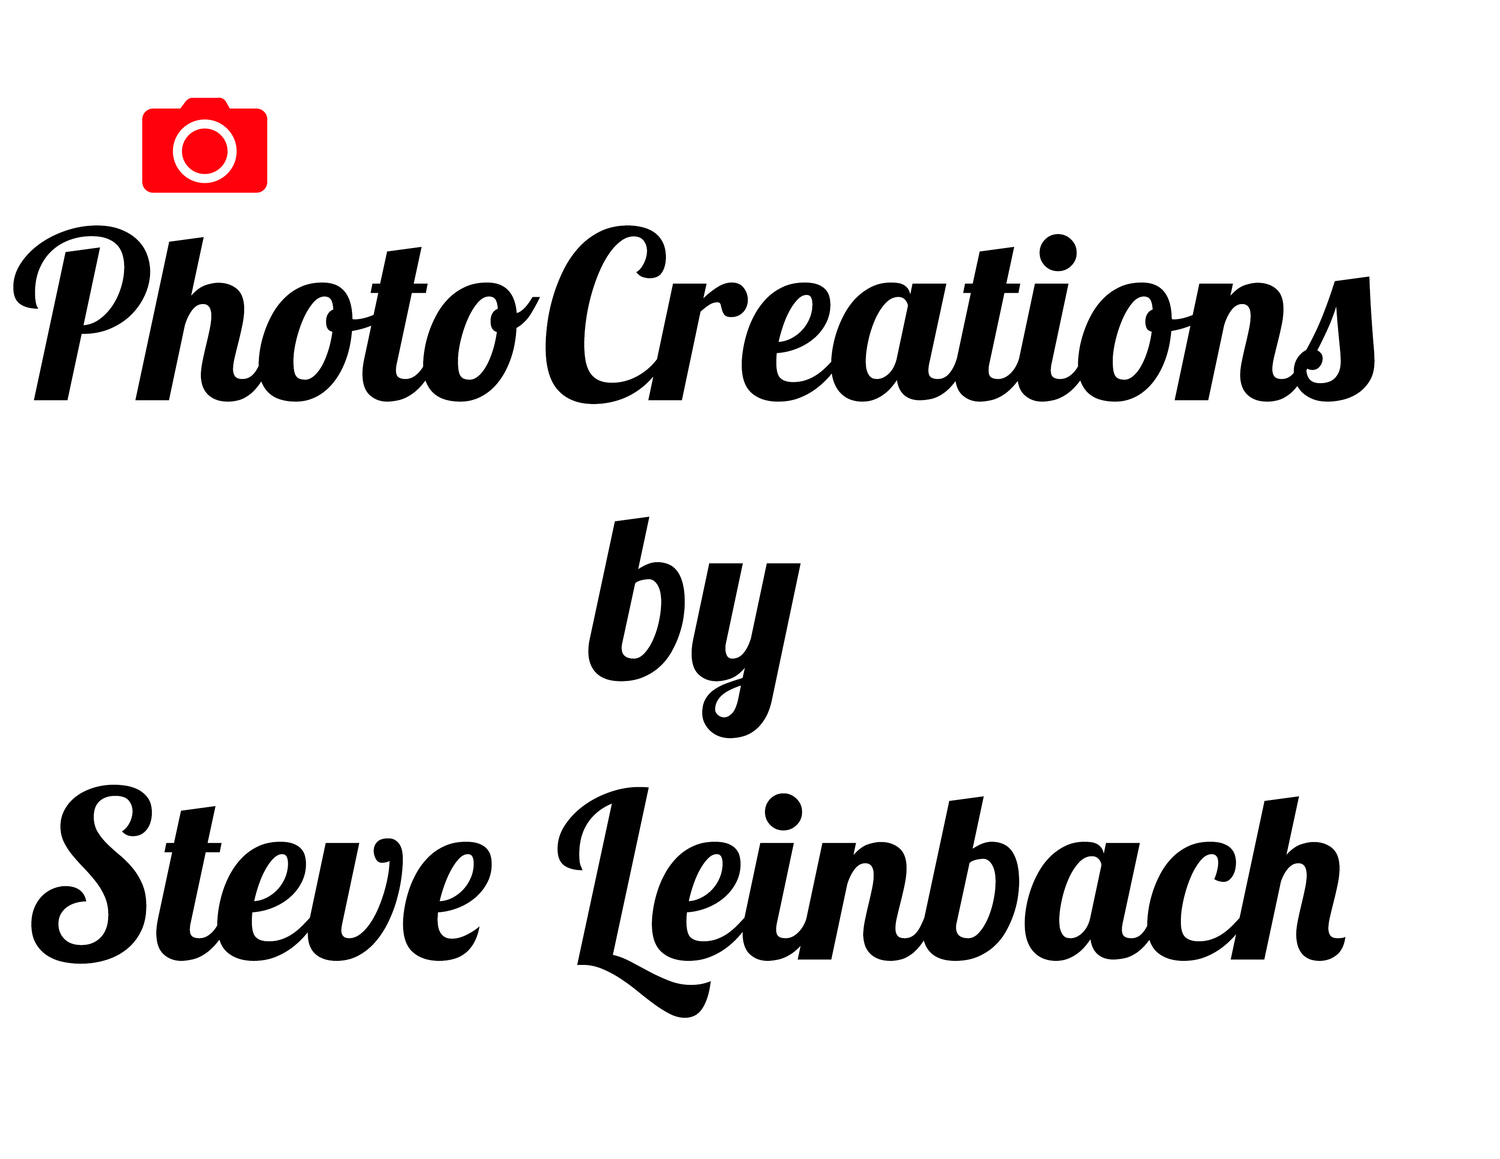 PhotoCreations by Steve Leinbach